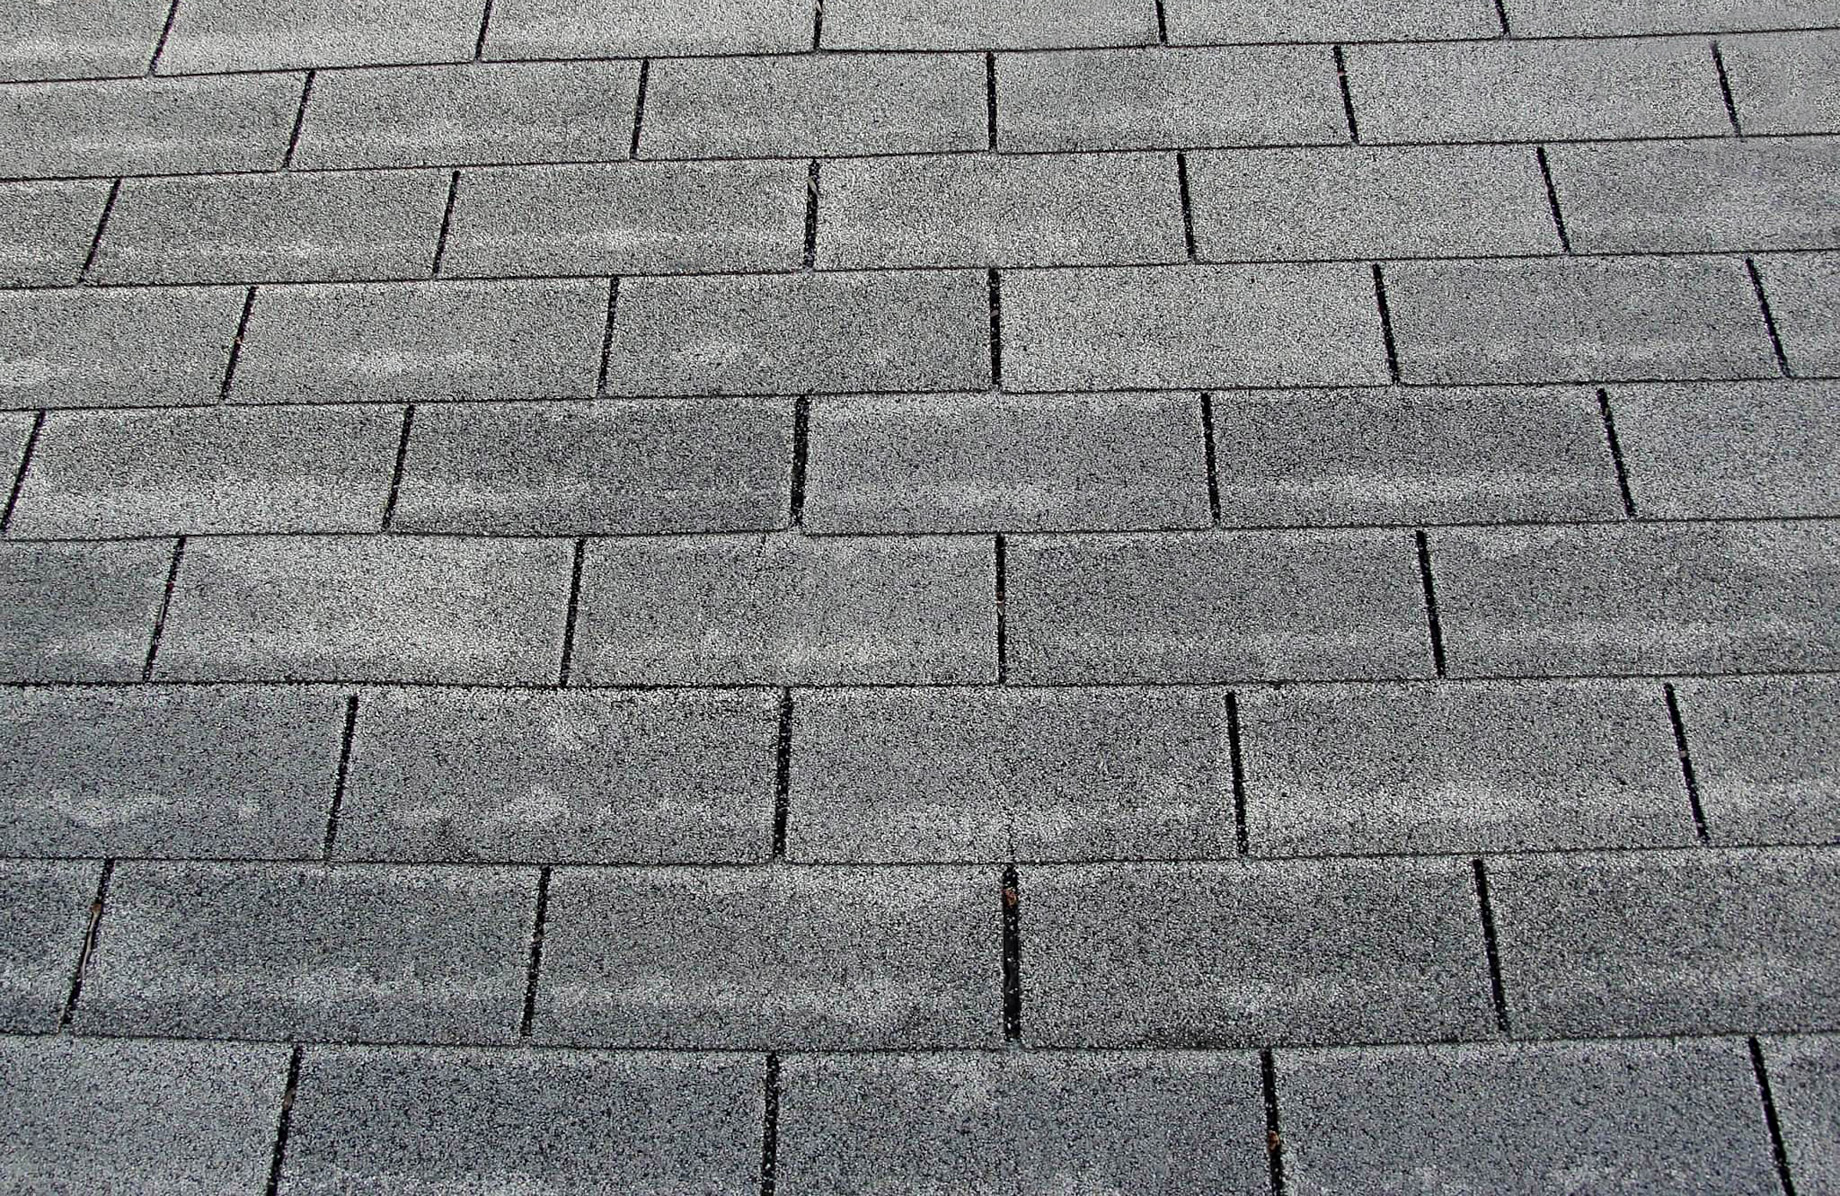 New Asphalt Shingle Roof - Home Upgrades - Top 3 Roofing Materials Modern Builders Are Using